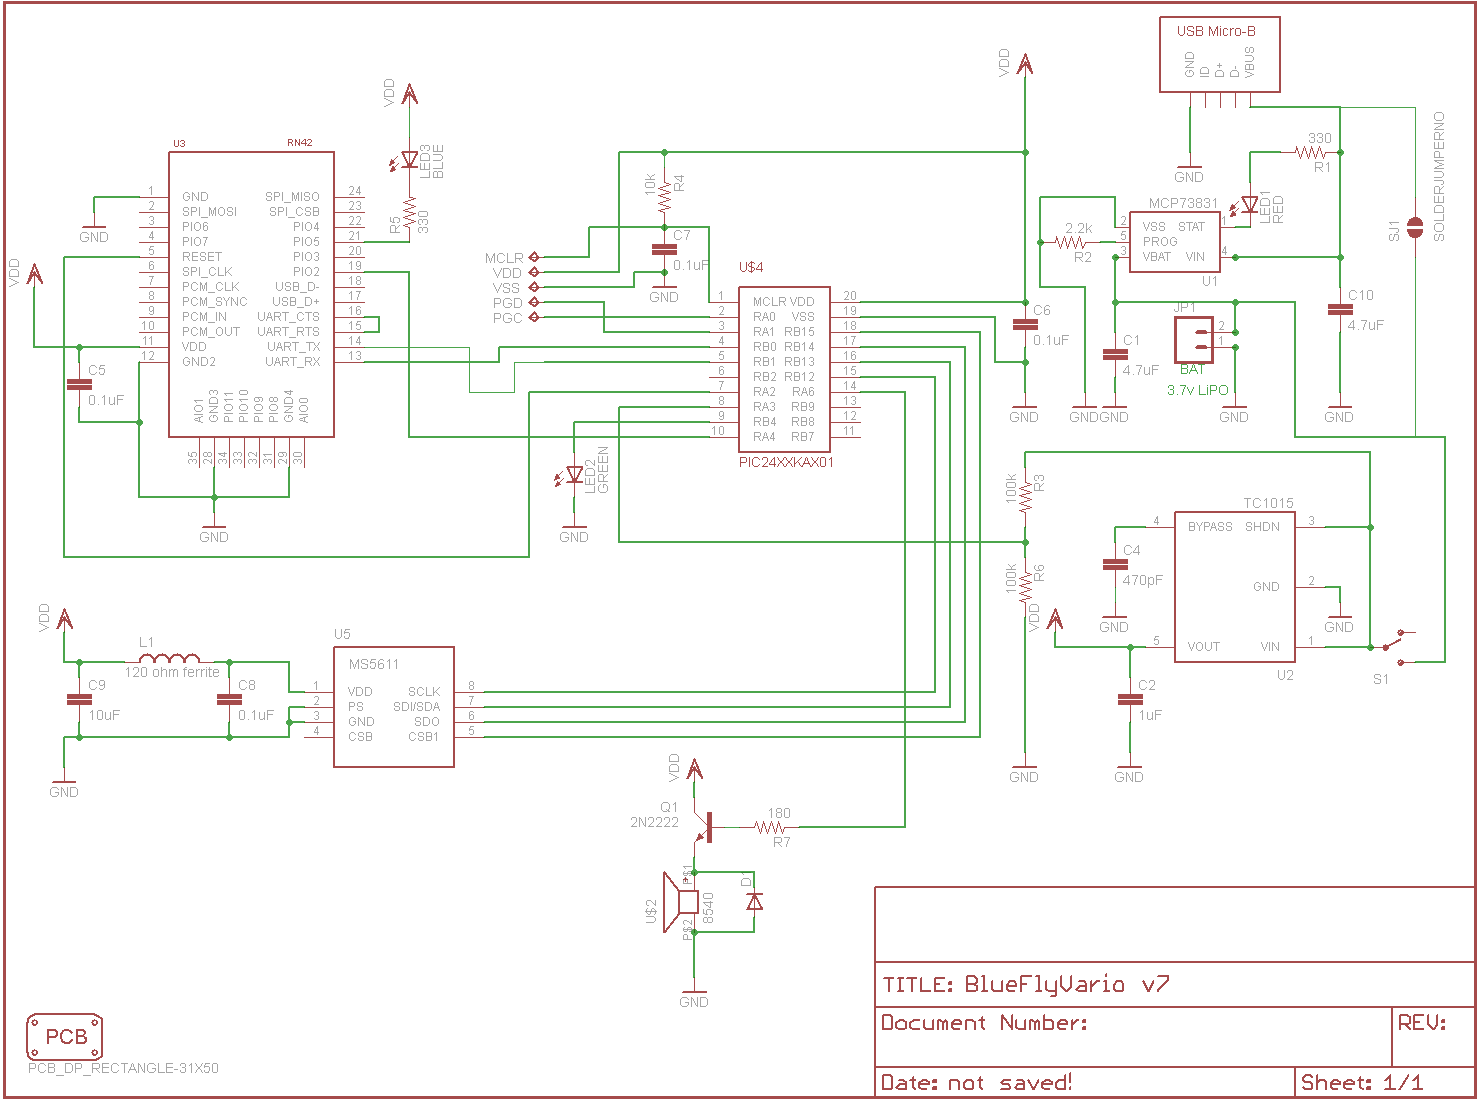 The schematic and PCB layout are shown below. The gerbers or  microcontroller code are available for personal use on request, please  email me.